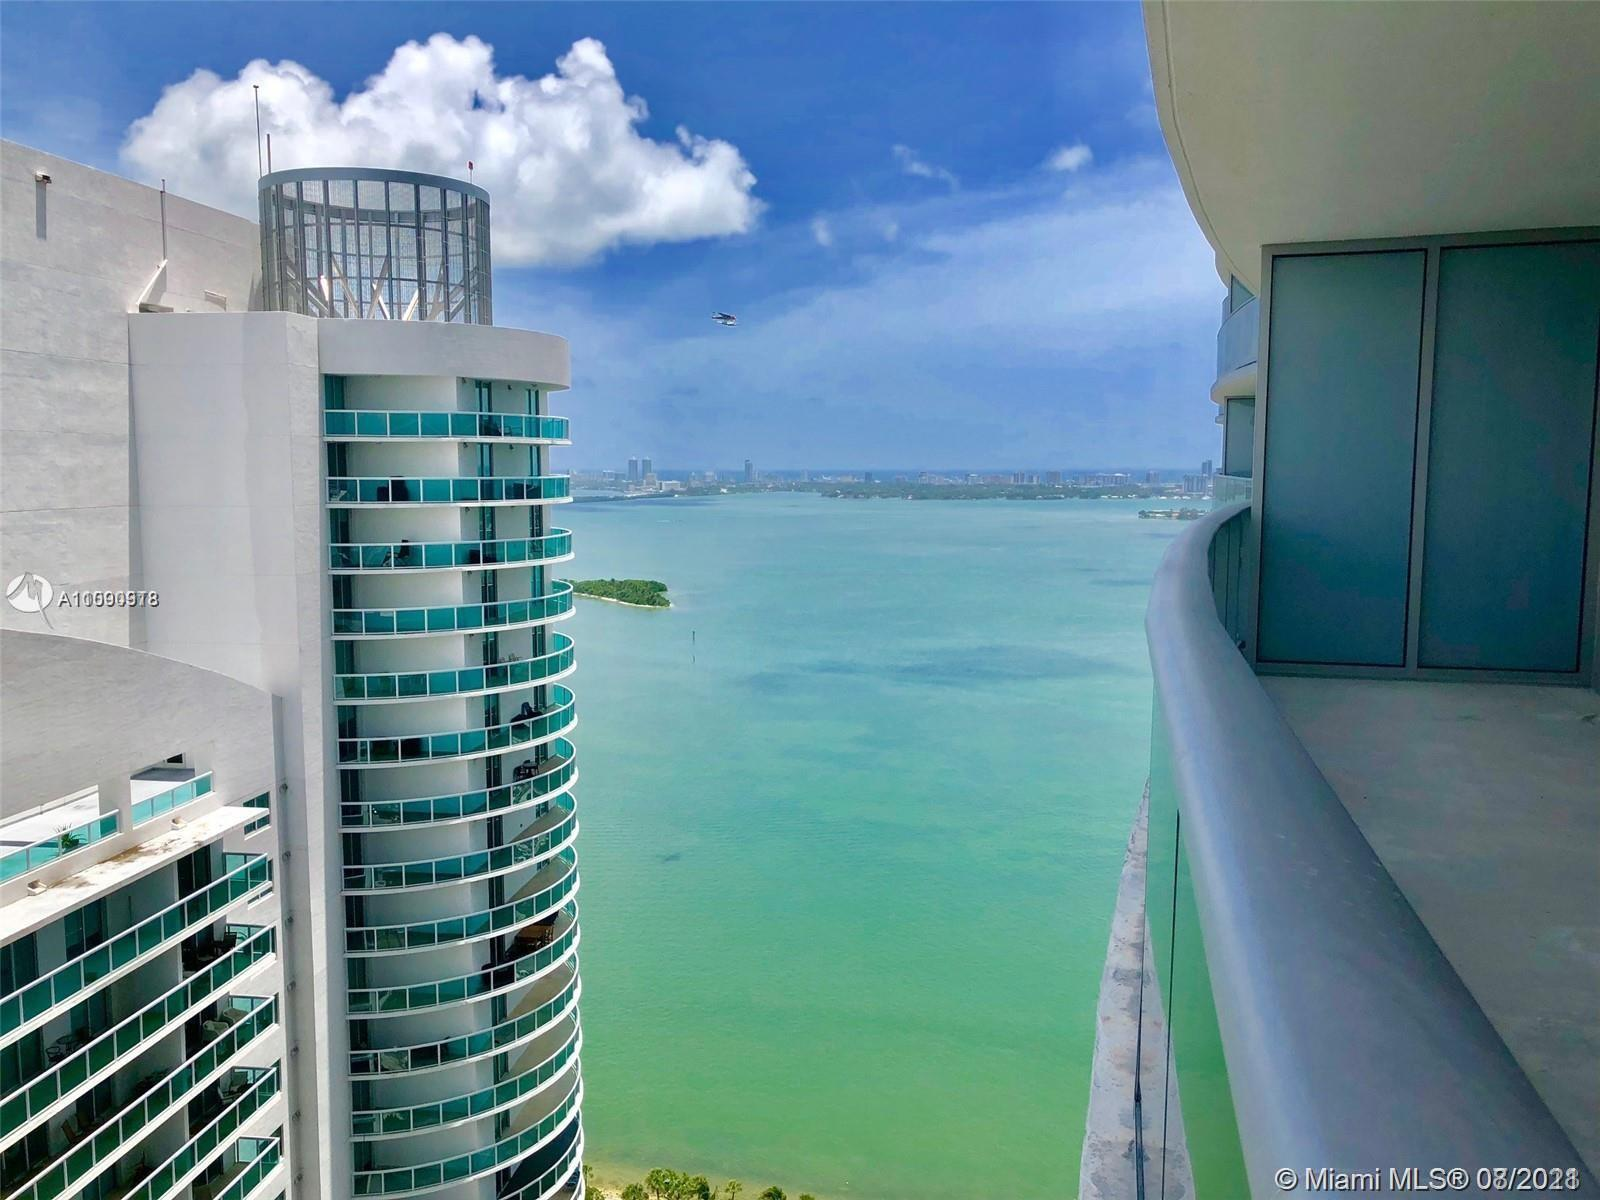 BEAUTIFUL 1/1.5 BATHS IN THE NEWLY OPENED LUXURY BUILDING OF ARIA IN THE BAY LOCATED IN EAST EDGEWAT